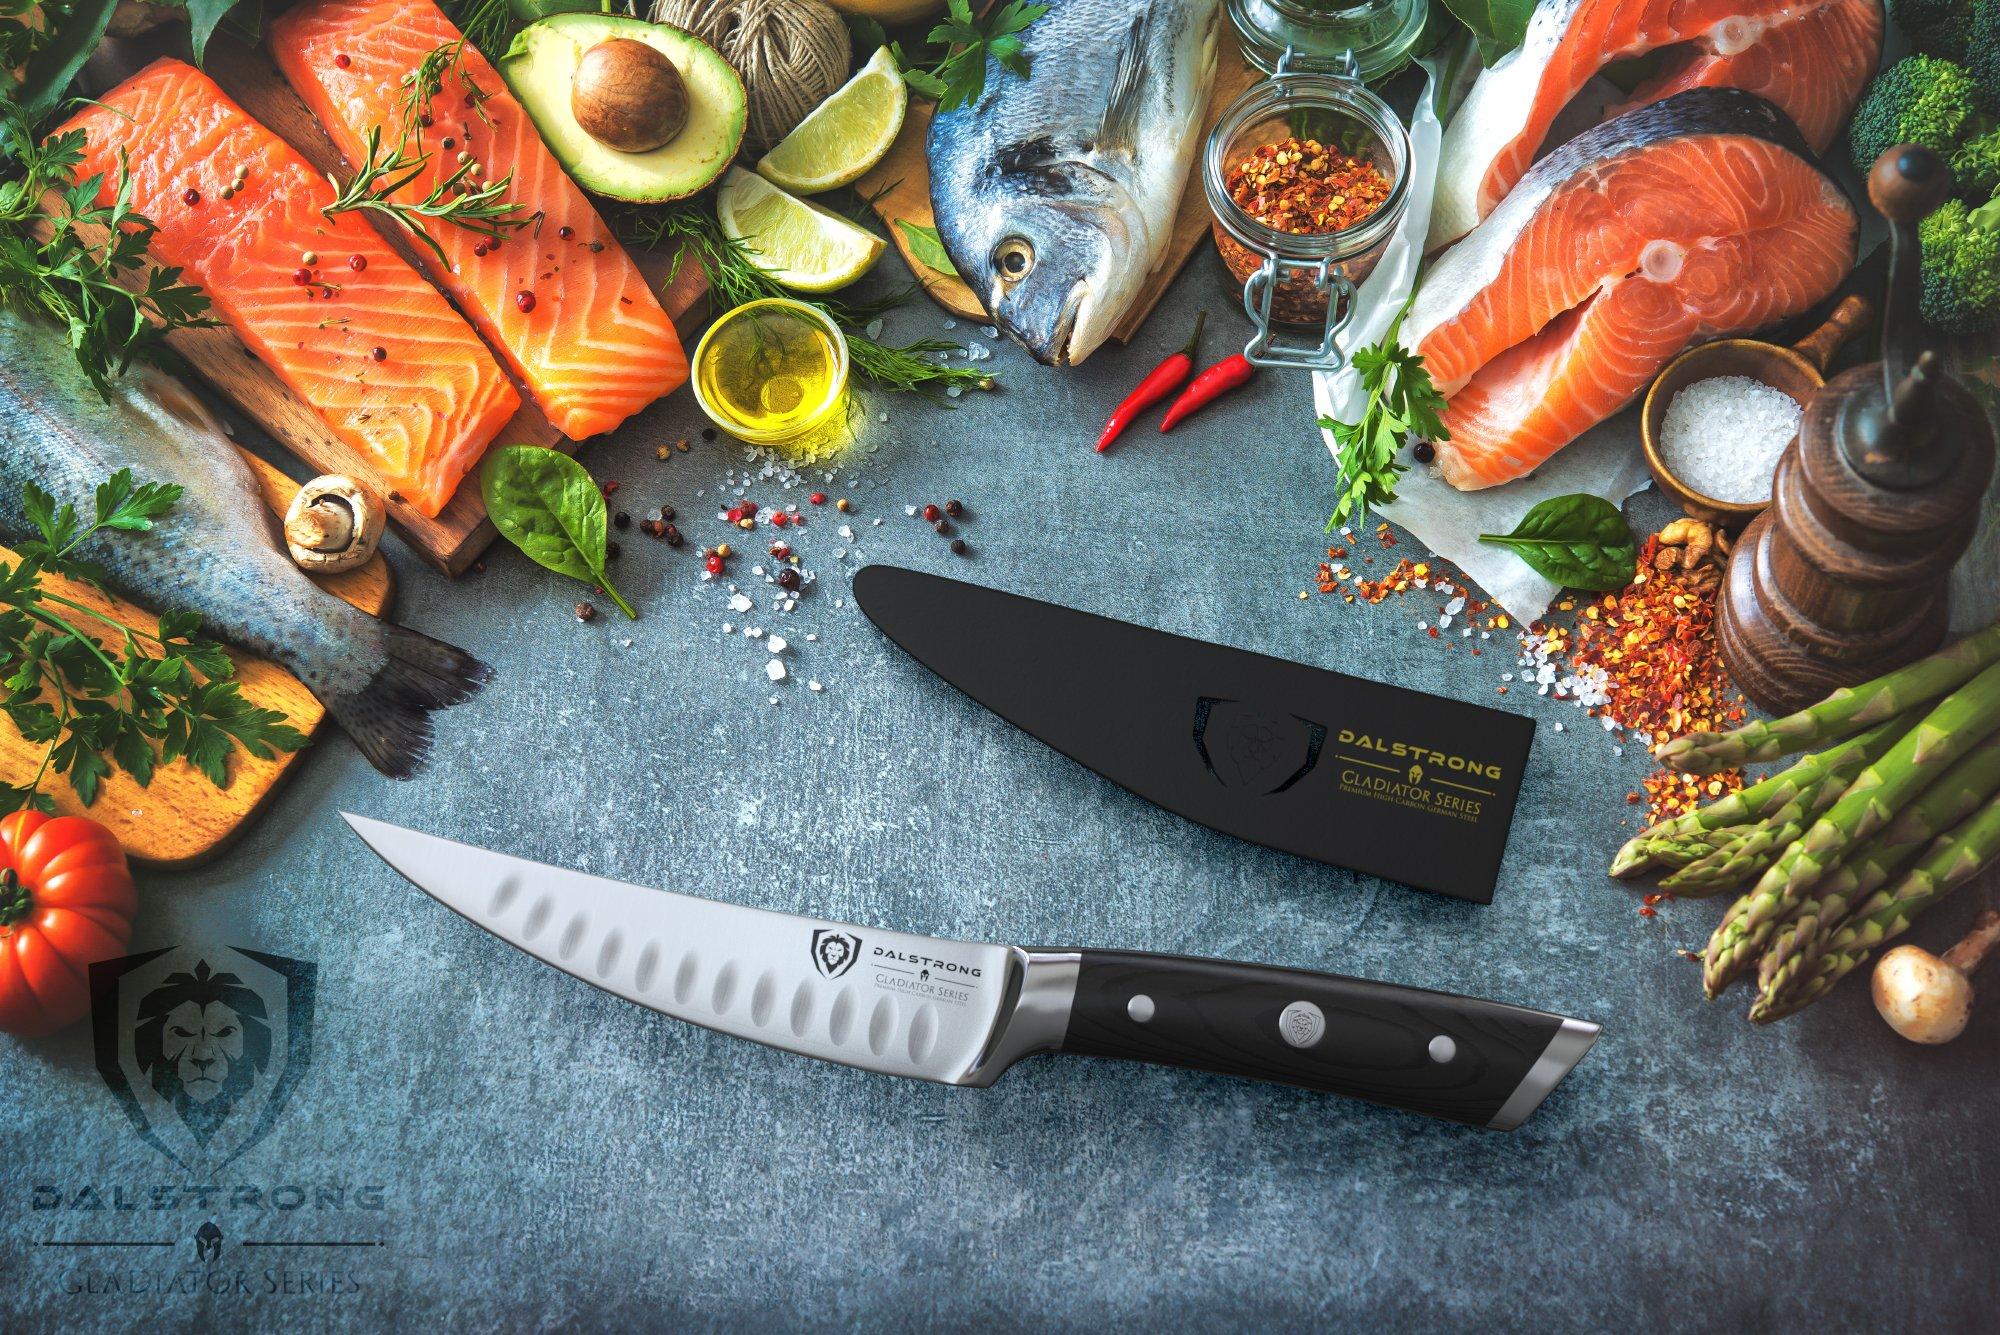 DALSTRONG Gladiator Series Filet & Boning Knife- 6''- German HC Steel - Curved Blade - With Sheath by Dalstrong (Image #3)